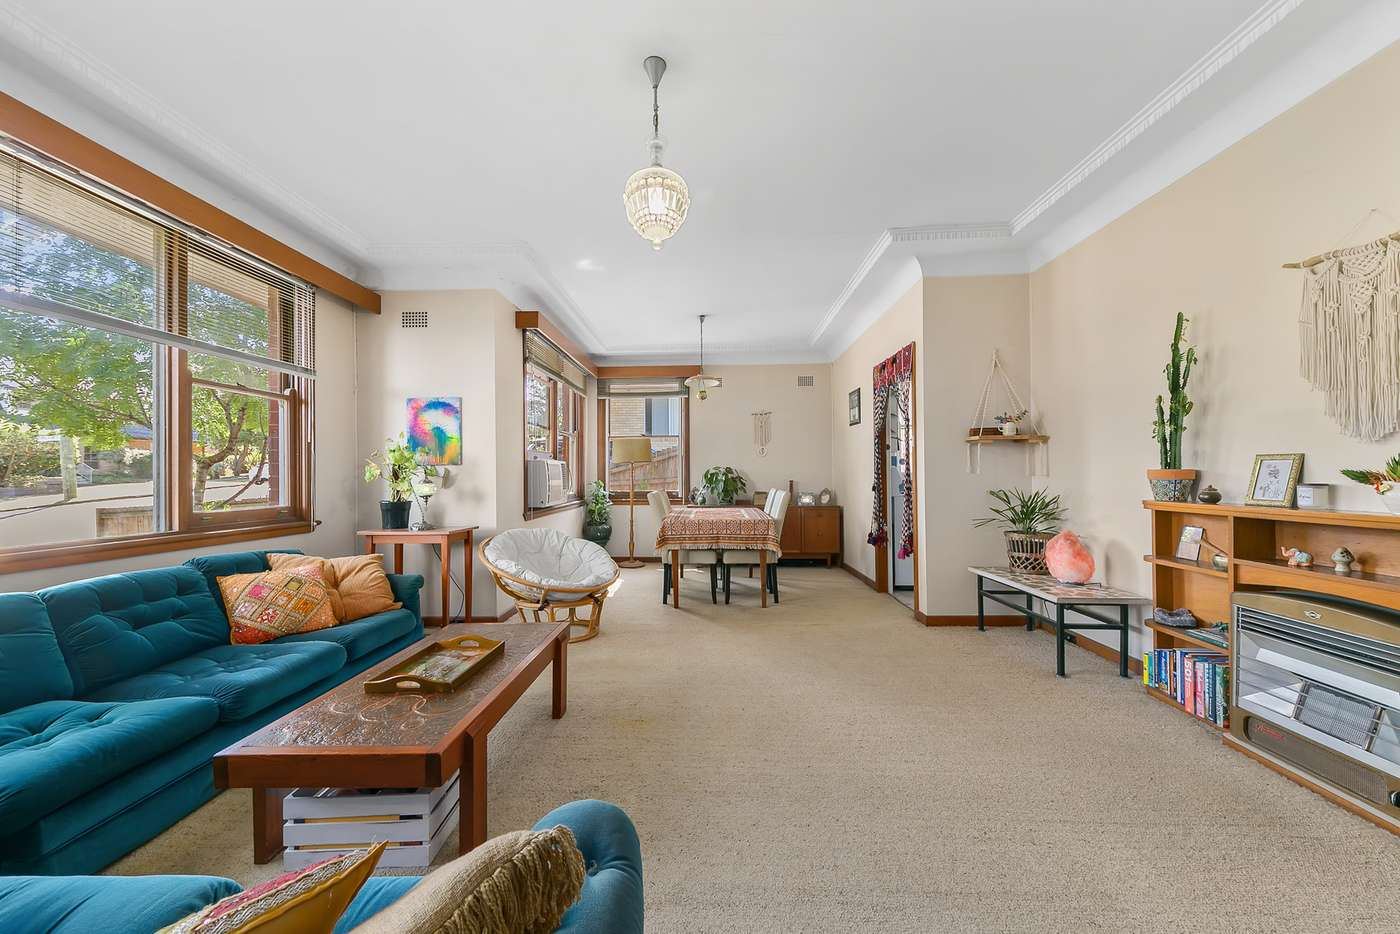 Fifth view of Homely house listing, 68 Kent Street, Epping NSW 2121